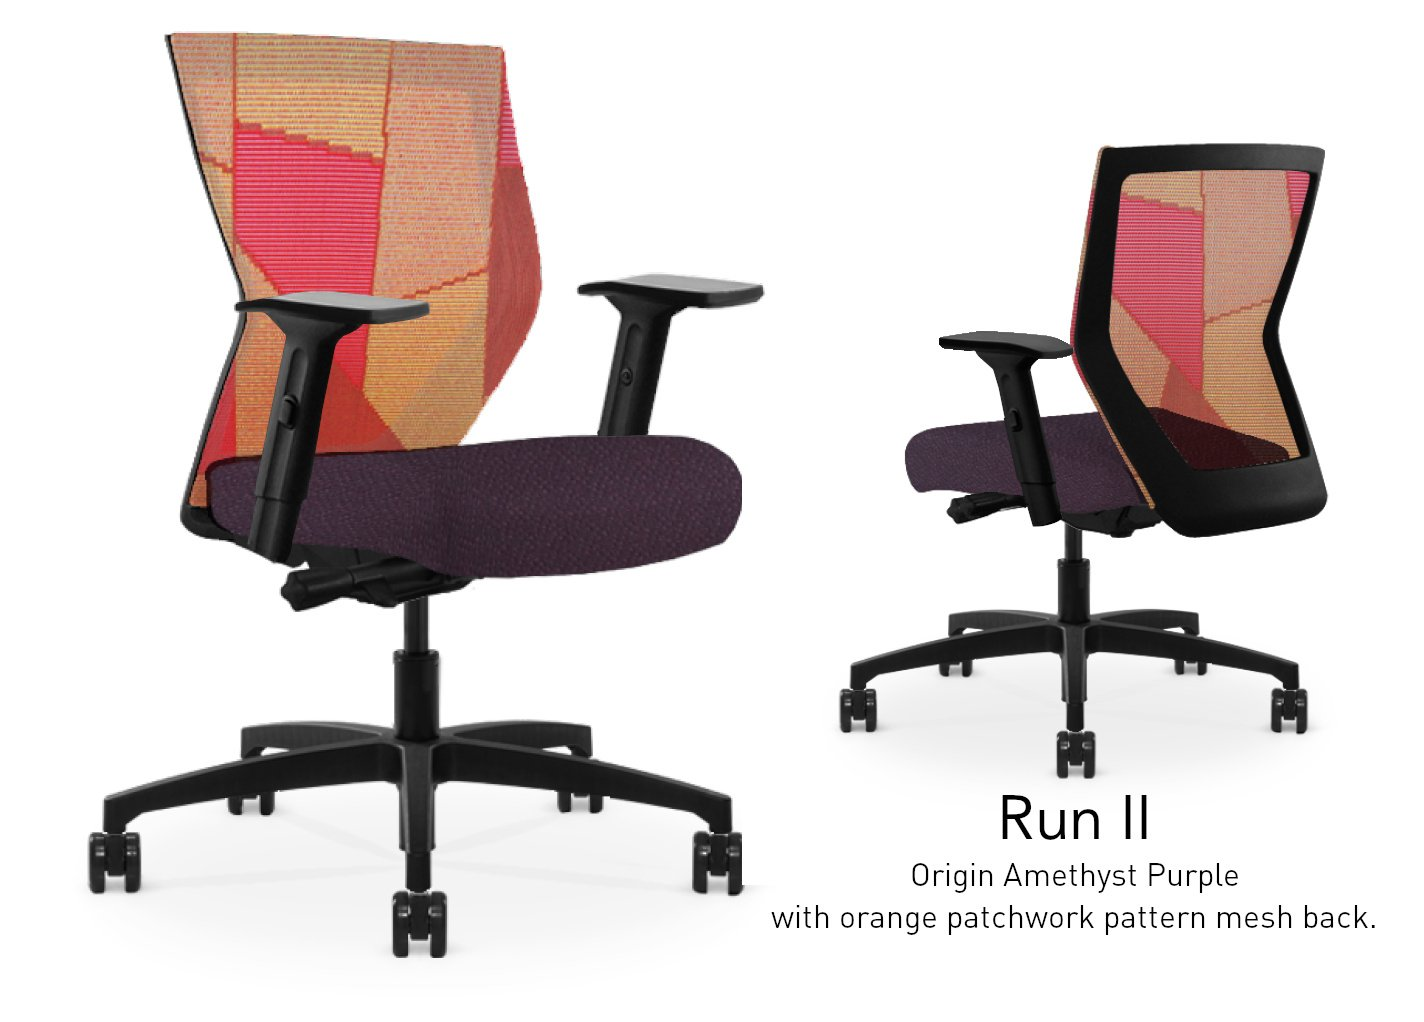 Run II High Back Black Frame Office Chair with Orange Patchwork Mesh Back